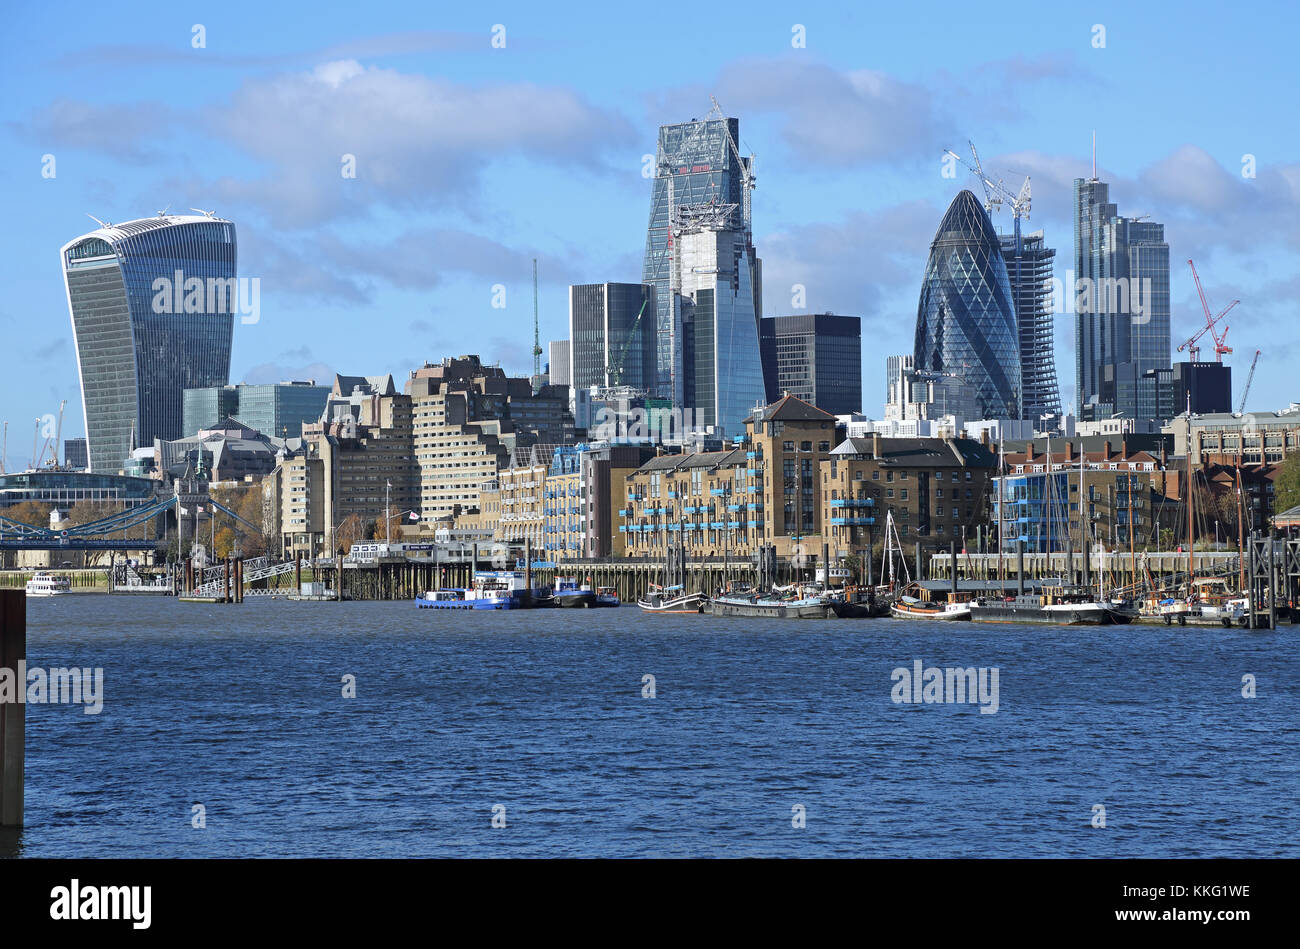 The London City skyline contrasts with warehouses and moored sailing barges on the waterfront in Wapping. Viewed - Stock Image